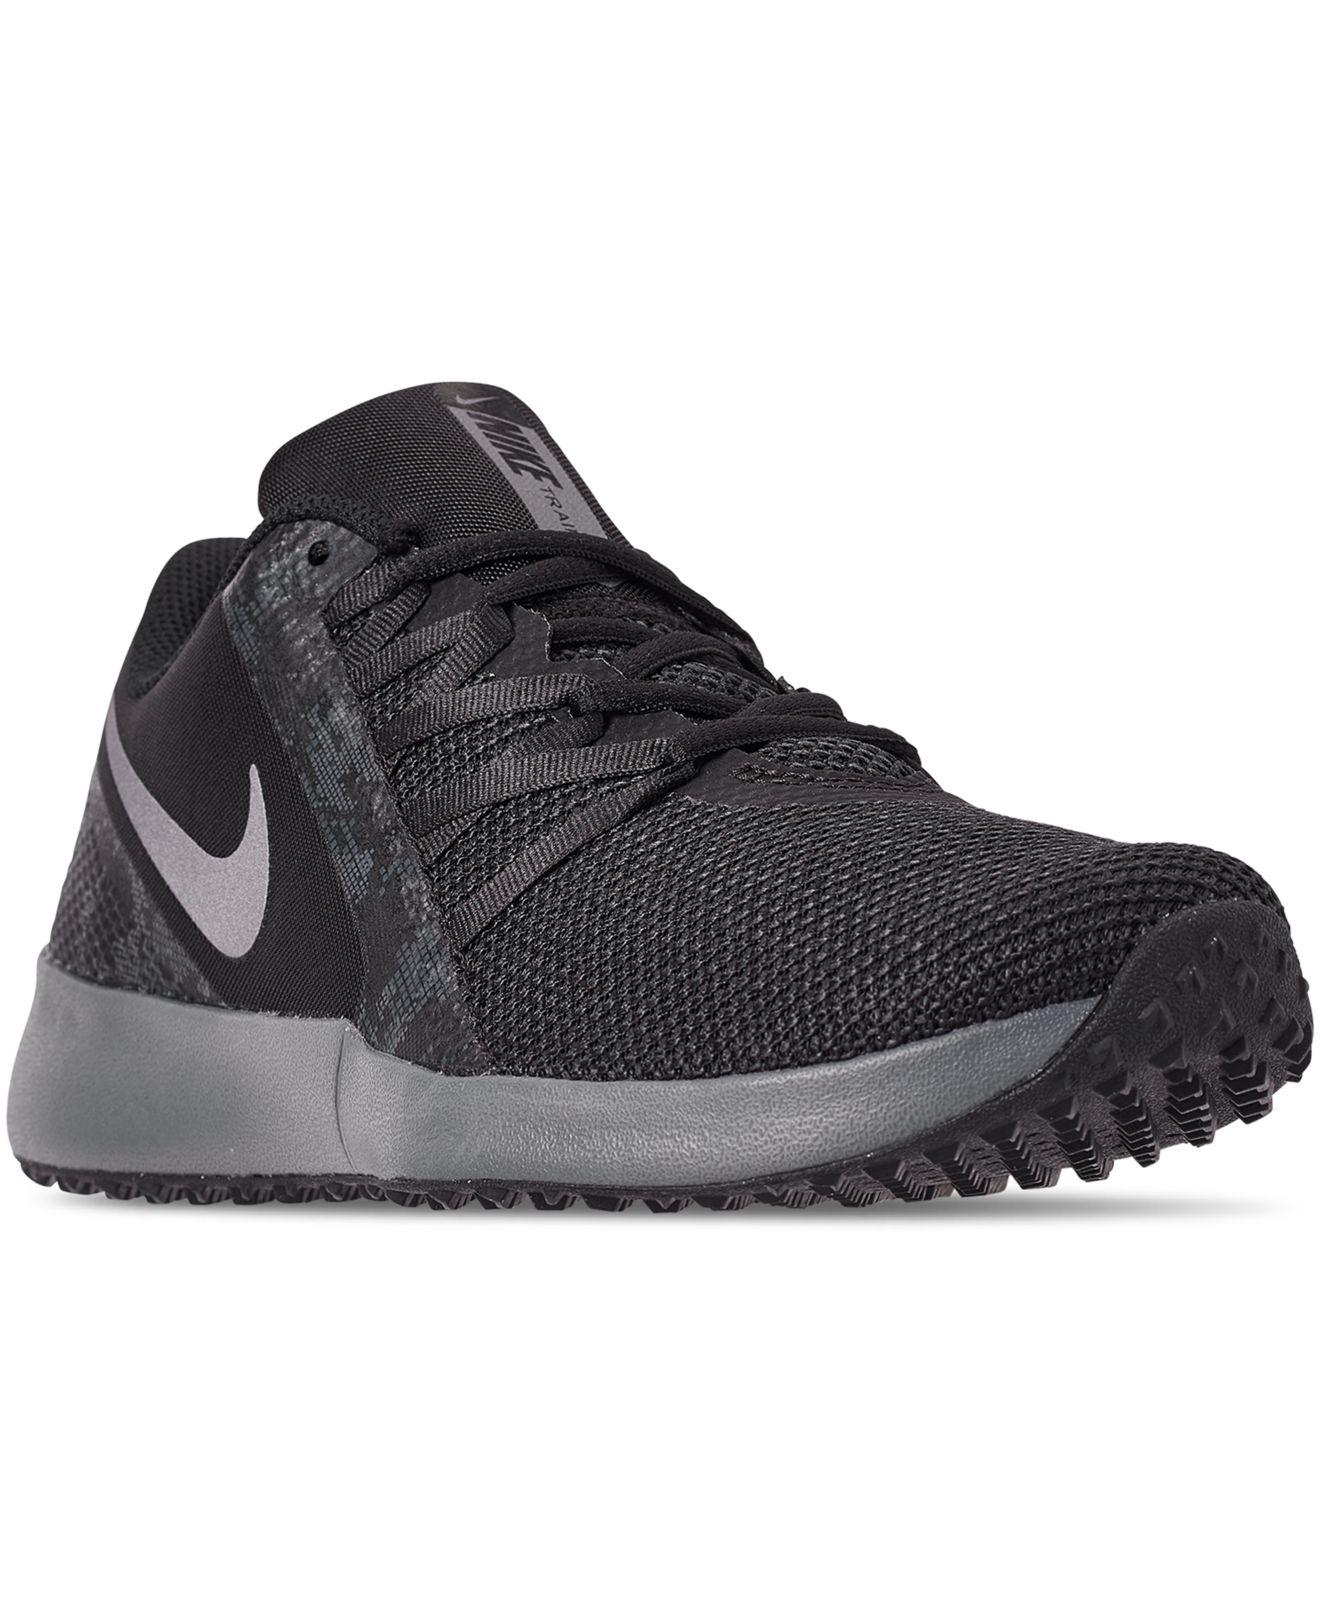 shopping Lyst - Nike Varsity Compete Camo Training Sneakers From Finish  Line ... e8a93 ... c33ab105a